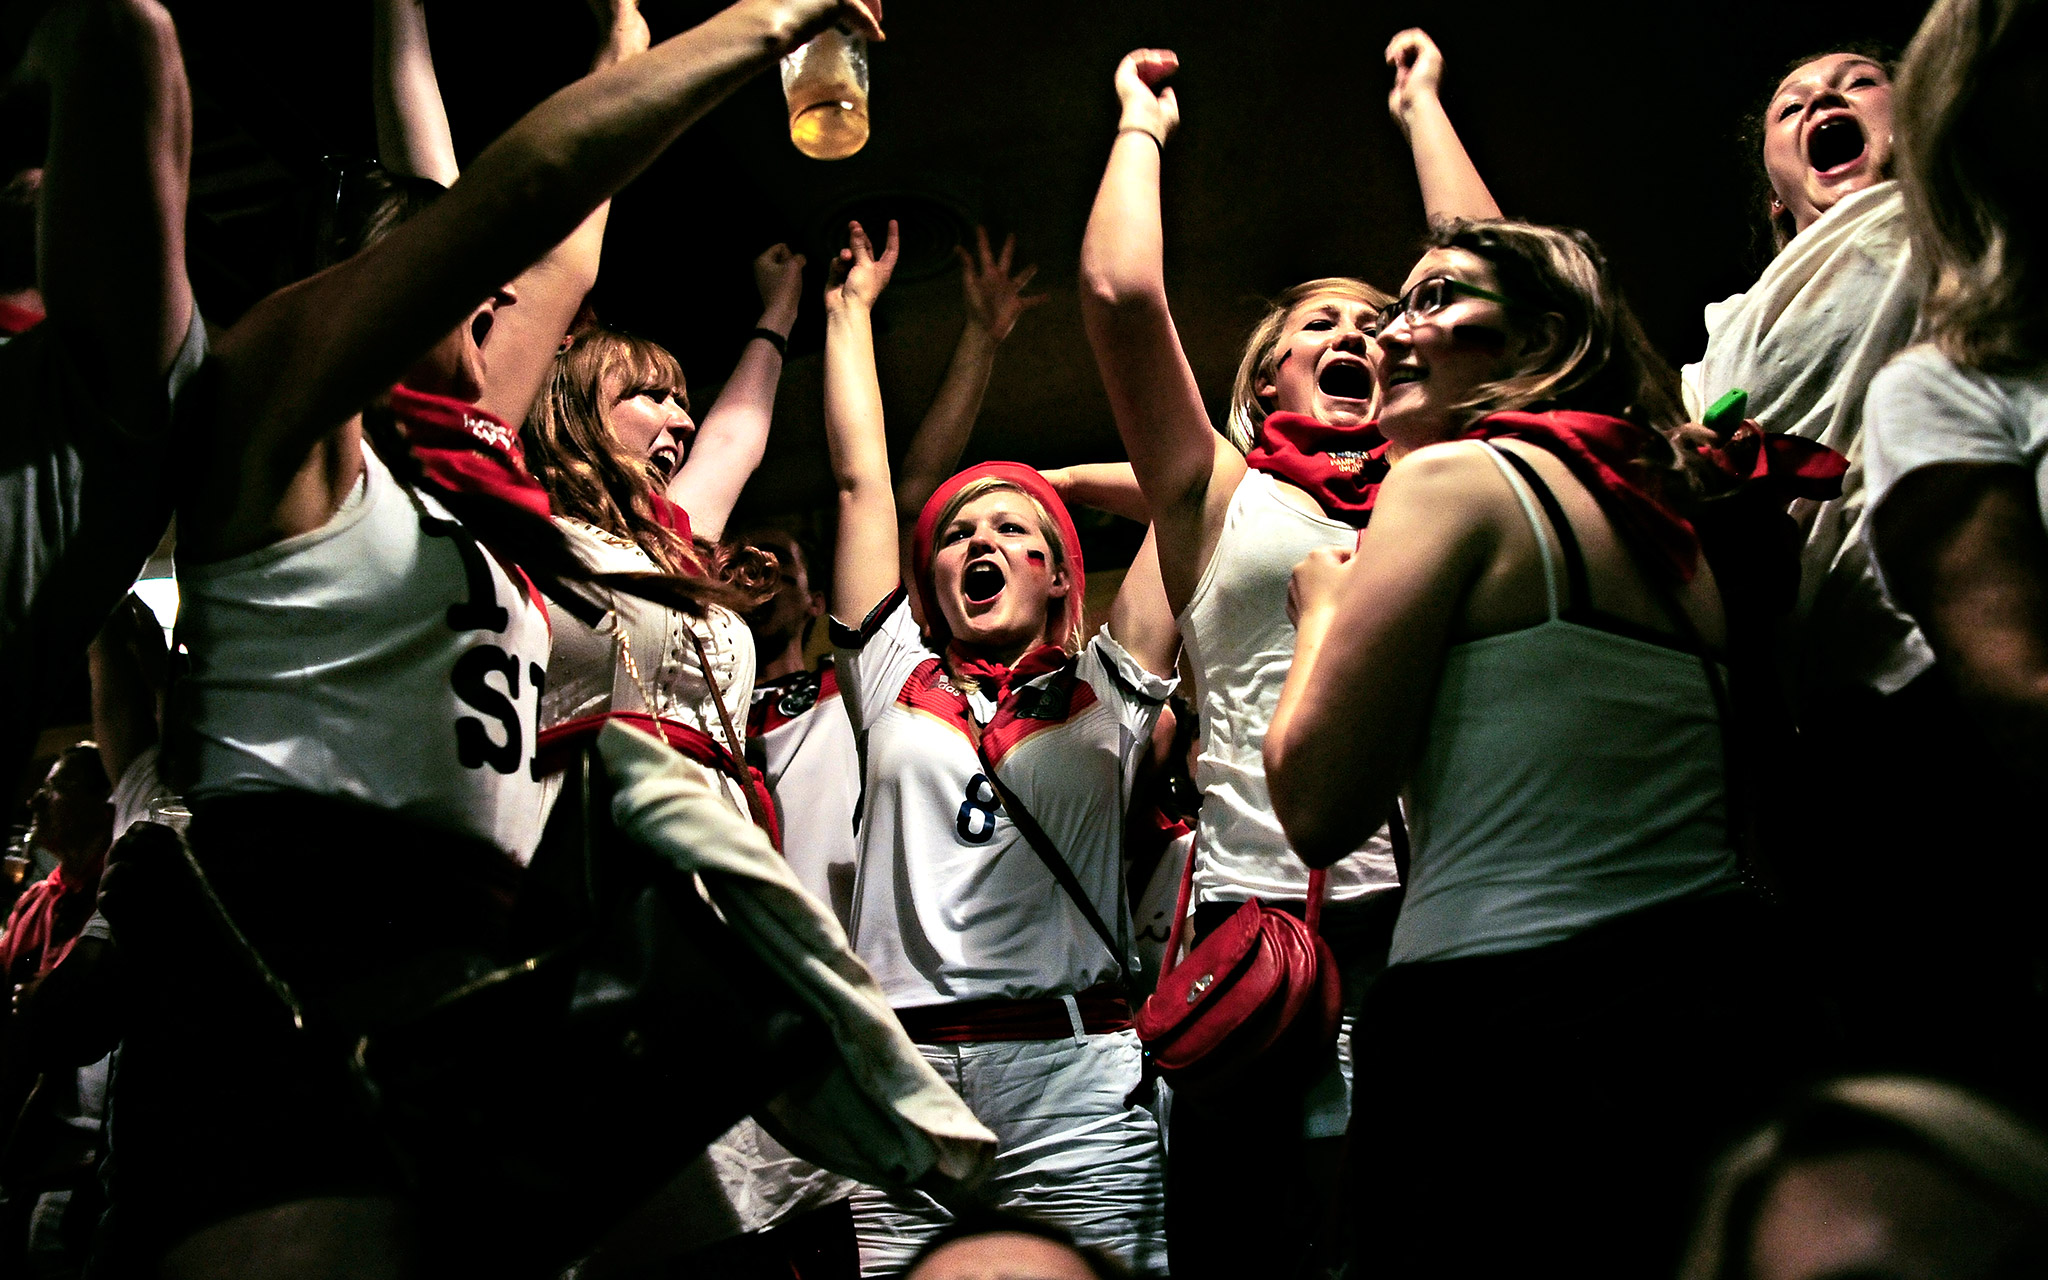 German fans celebrate after their team won the World Cup against Argentina during the San Fermin festival, in Pamplona, Spain. Revelers from around the world arrive to Pamplona every year to take part in the running of the bulls.